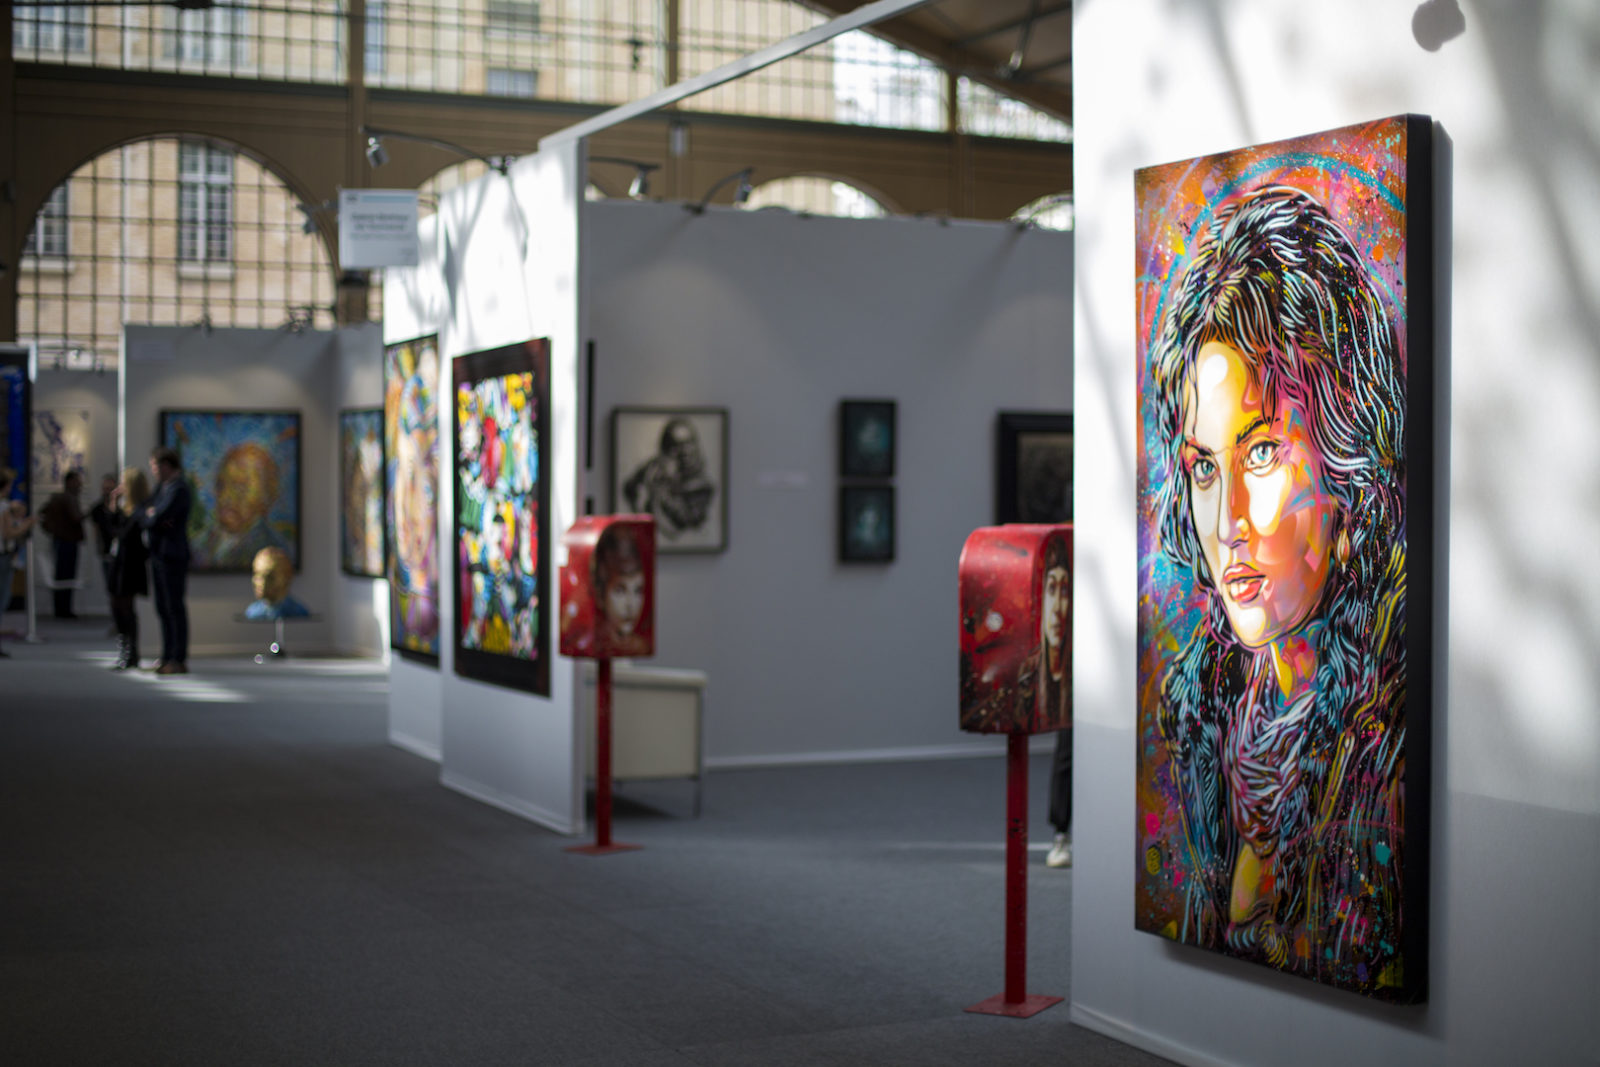 urbanartfair reportage photo foire streetart arturbain Paris exposition galeries panorama carreaudutemple shows films oeuvre couleur - Urban Art Fair : la foire qui booste le marché du street art